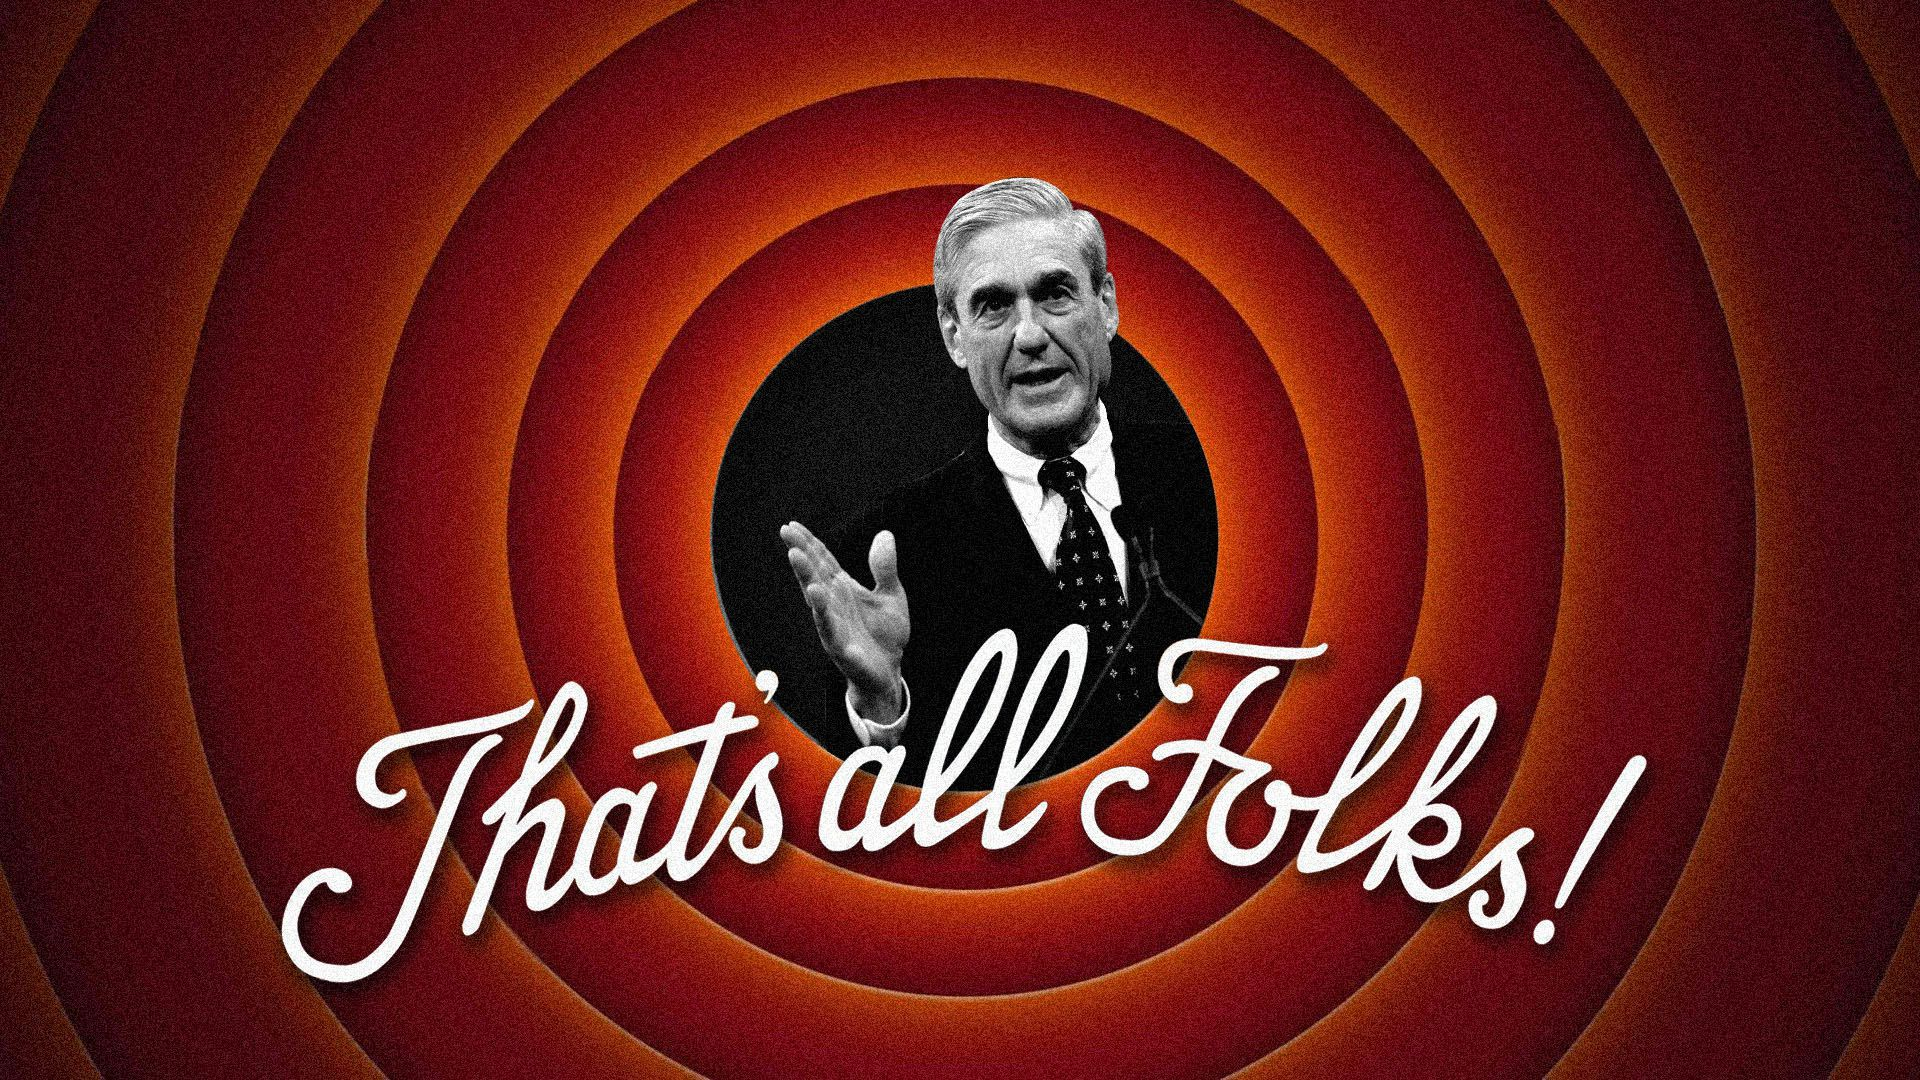 Mueller illustration saying that's all folks